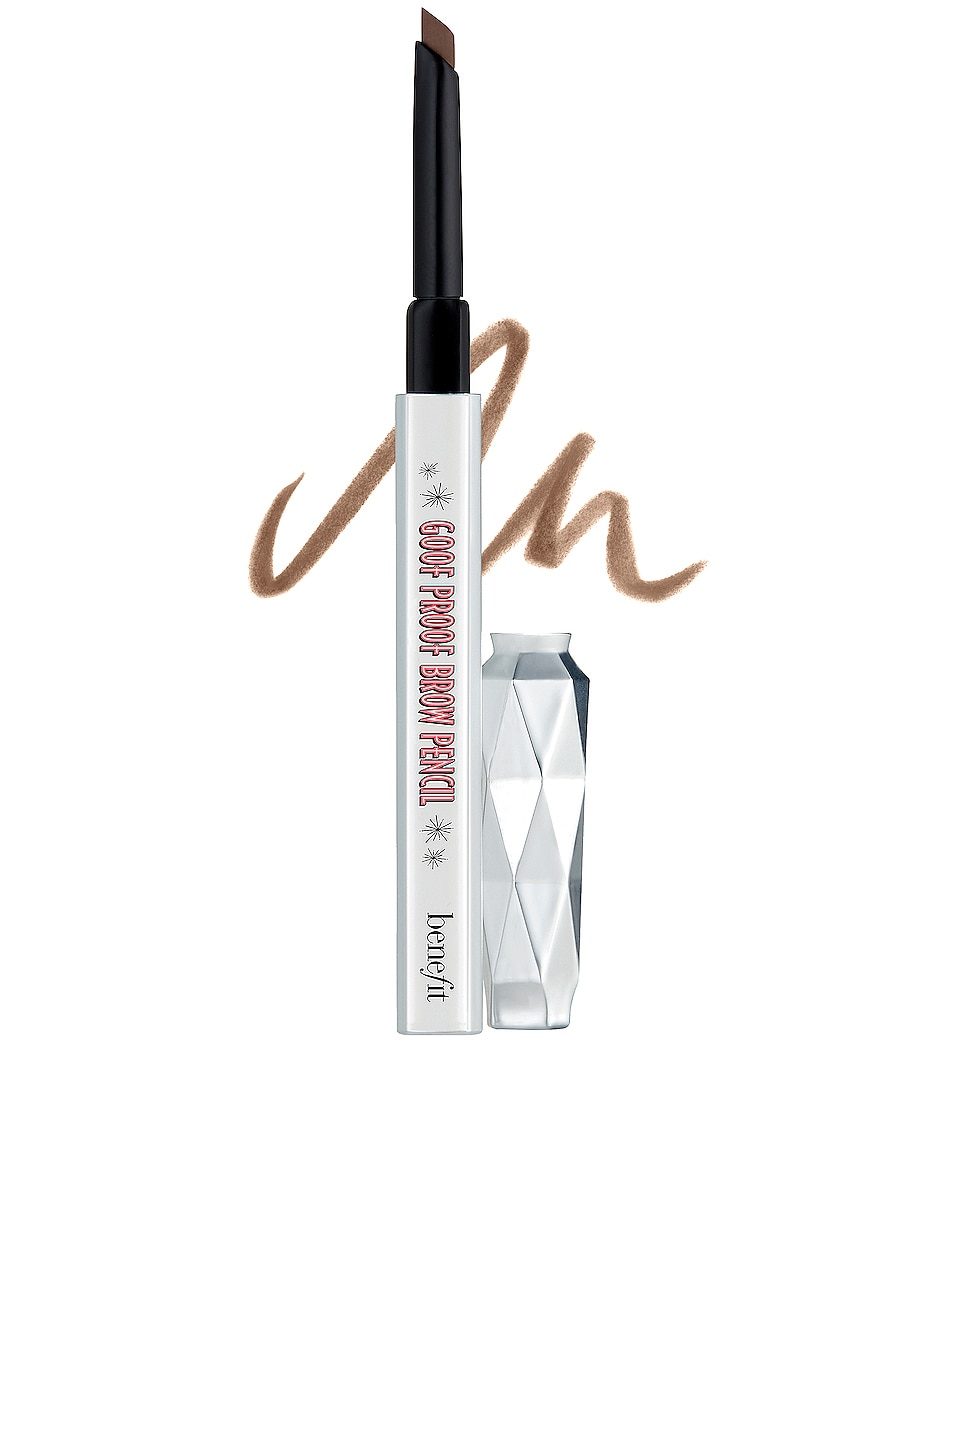 Benefit Cosmetics Goof Proof Eyebrow Pencil Mini in 03 Medium